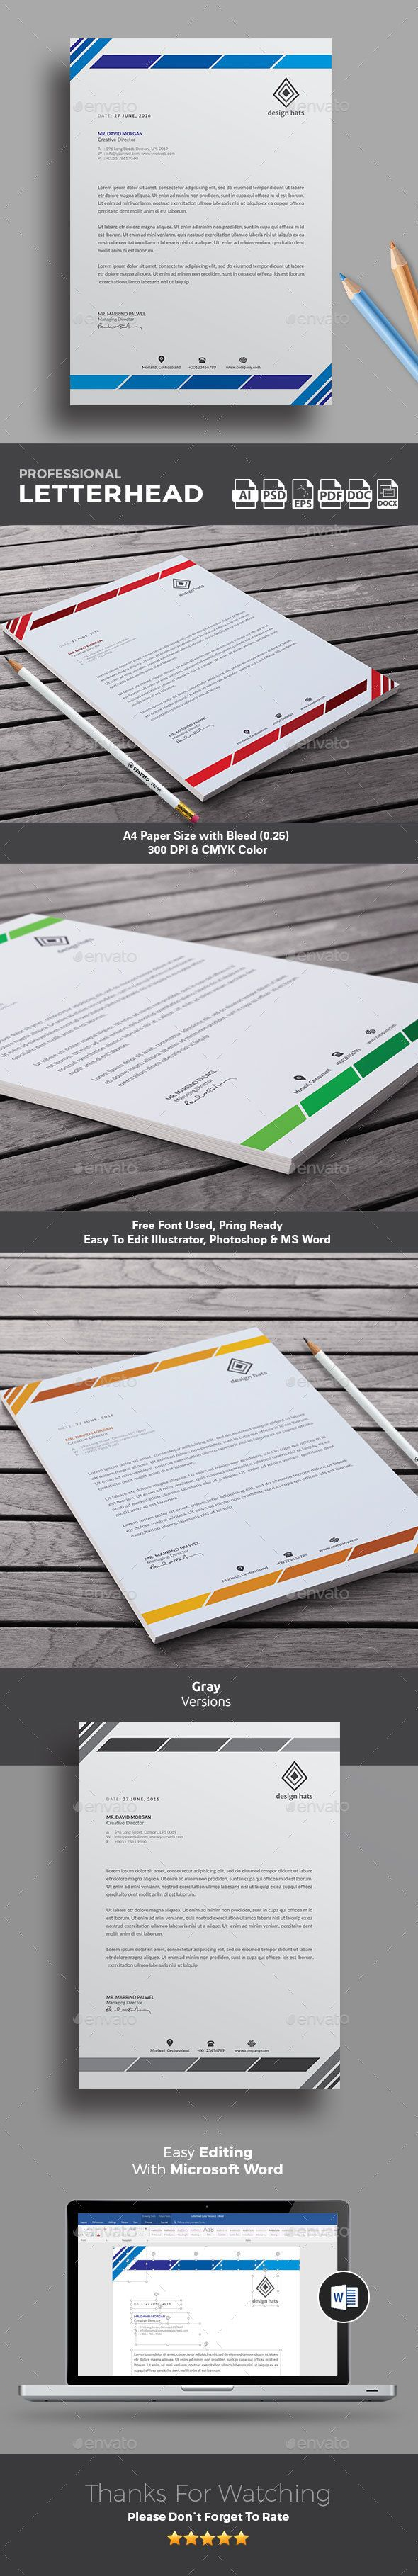 #Letterhead Design is awesome letterhead Template for company letterhead design. I would love to use this clean, tidy but stylish letterhead for my own. Available in Word, PSD, Vector EPS & AI format. Download  http://graphicriver.net/item/letterhead/16902393?ref=themedevisers